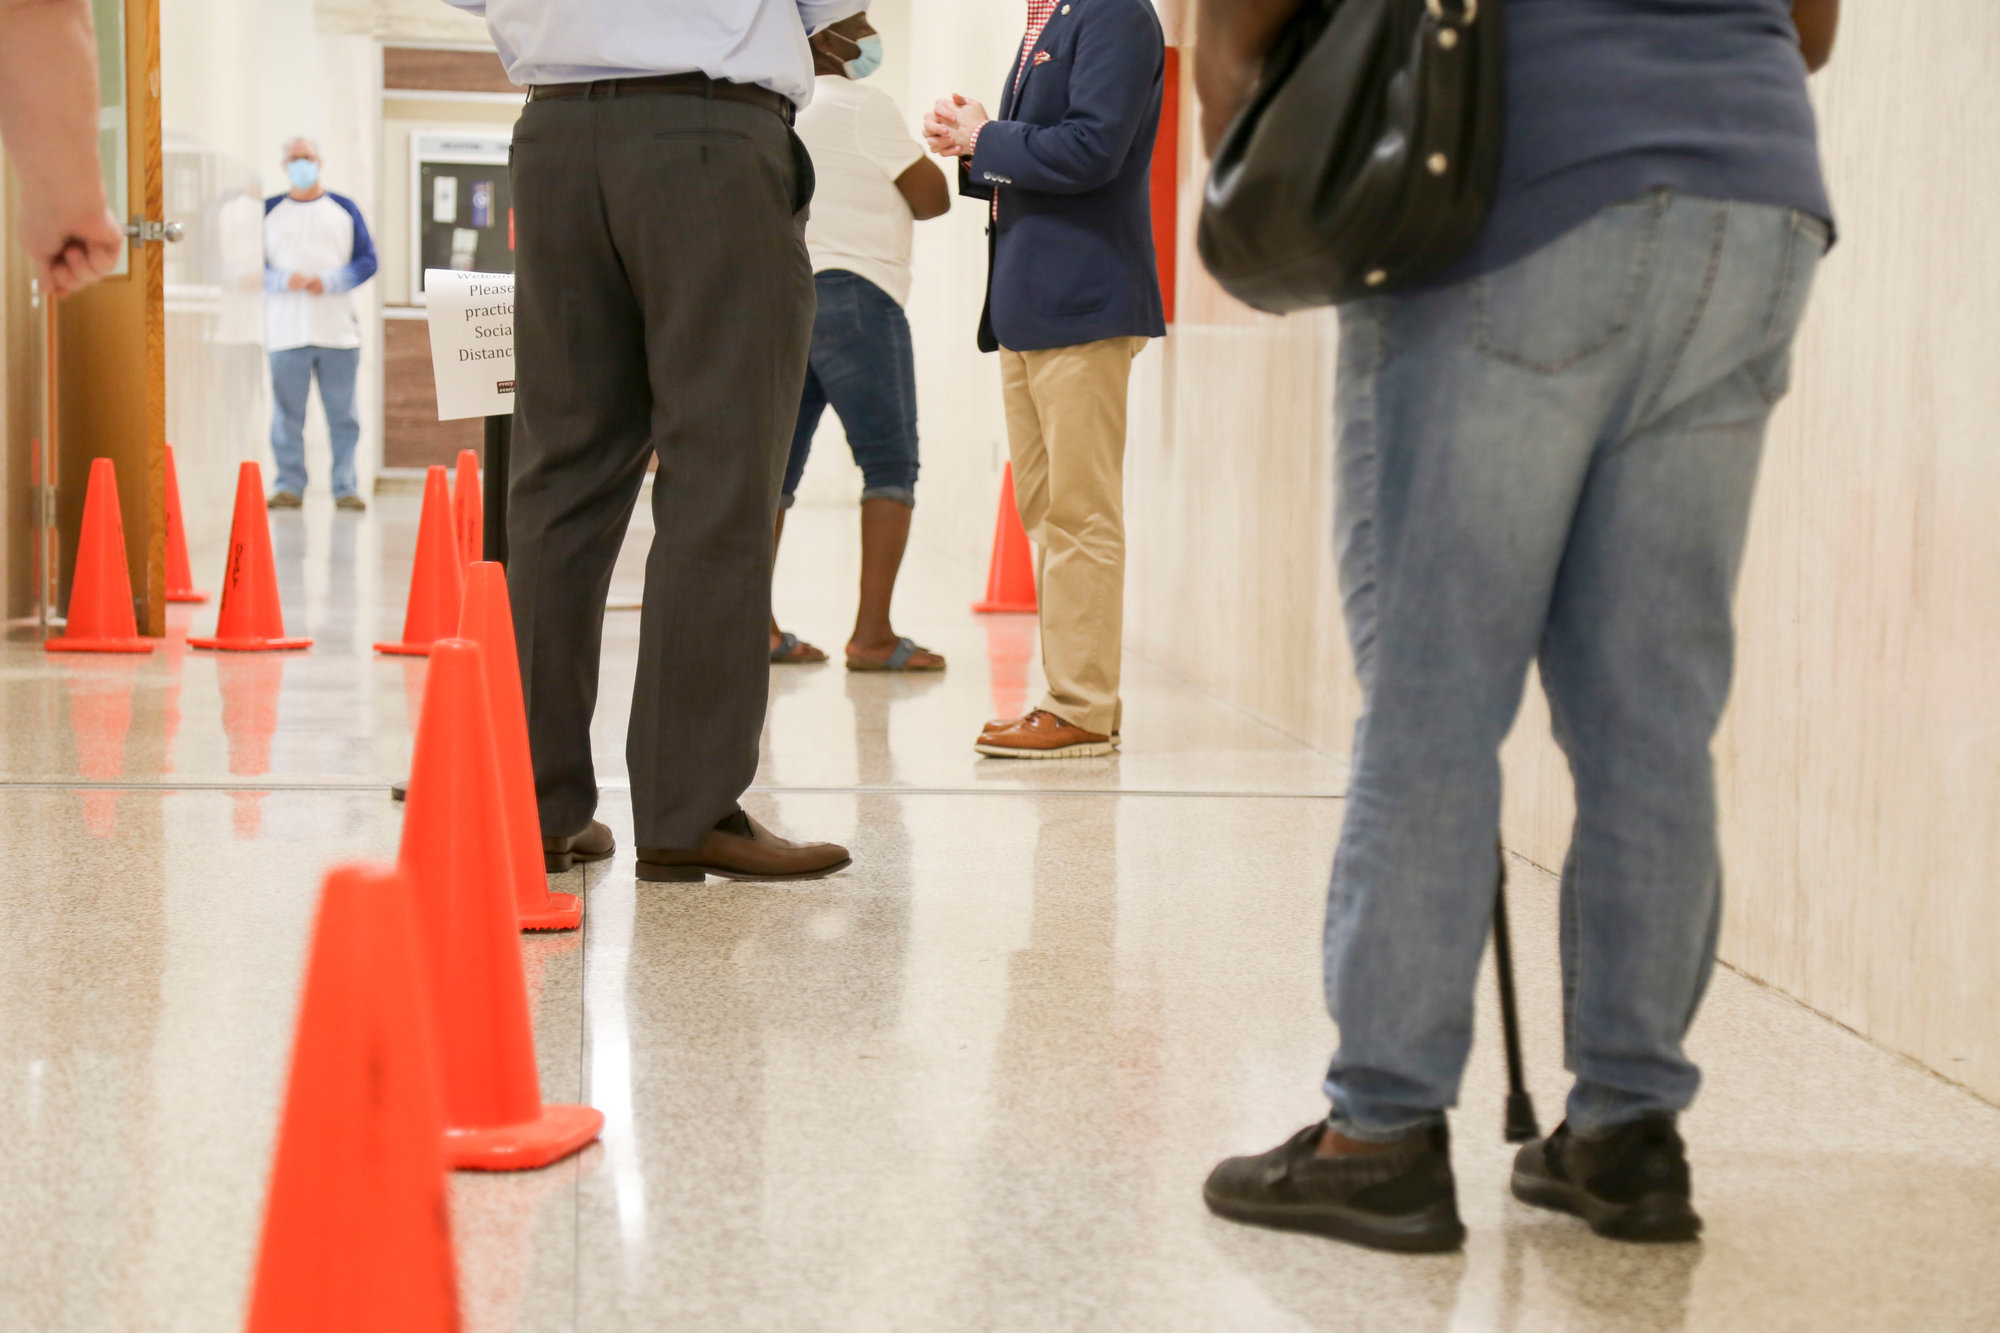 Voters stand in line on Friday, June 5, 2020, at the Sumter County Voter Registration and Elections Office to vote absentee in person. Monday at noon was the filing deadline for city and county races.